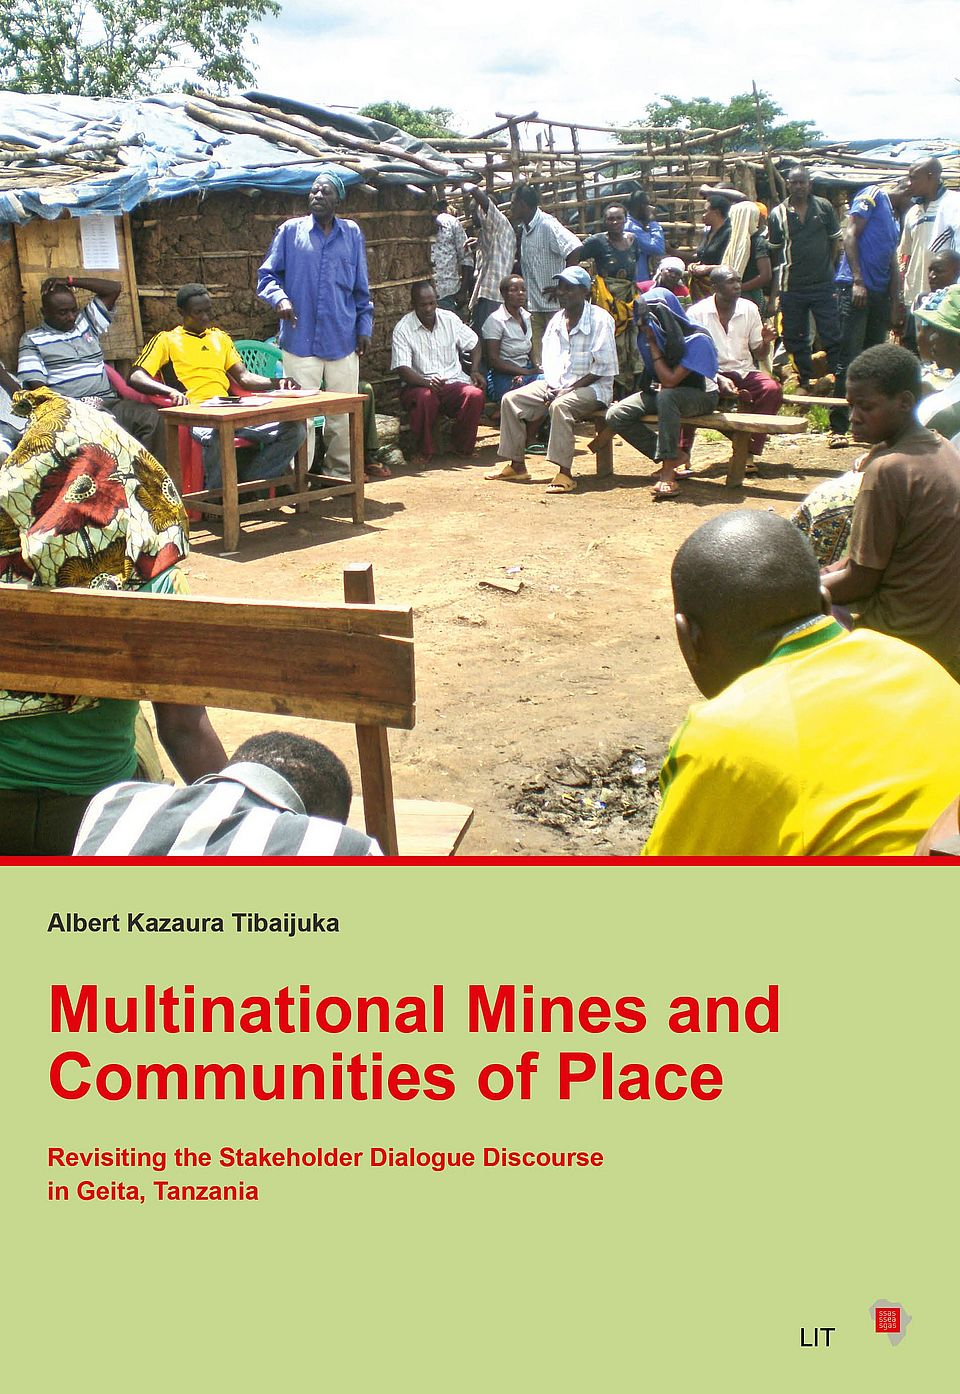 Cover of the thesis Multinational mines and communities of place